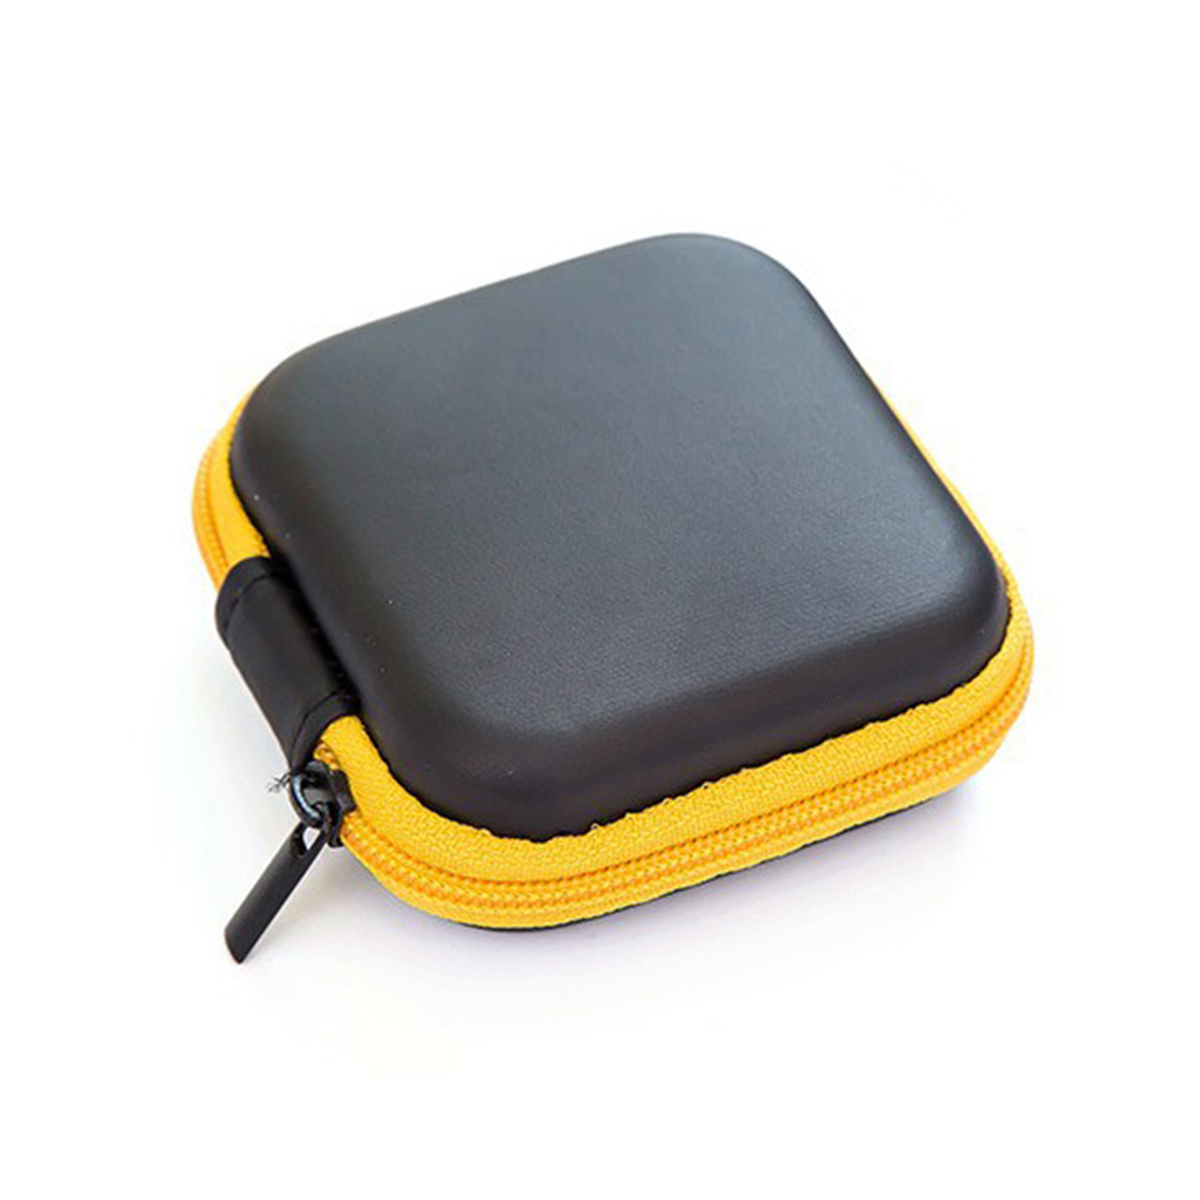 Leather Earphone Storage Bag Case Earbuds Mp3 USB Cable Pouch Pocket Wallet